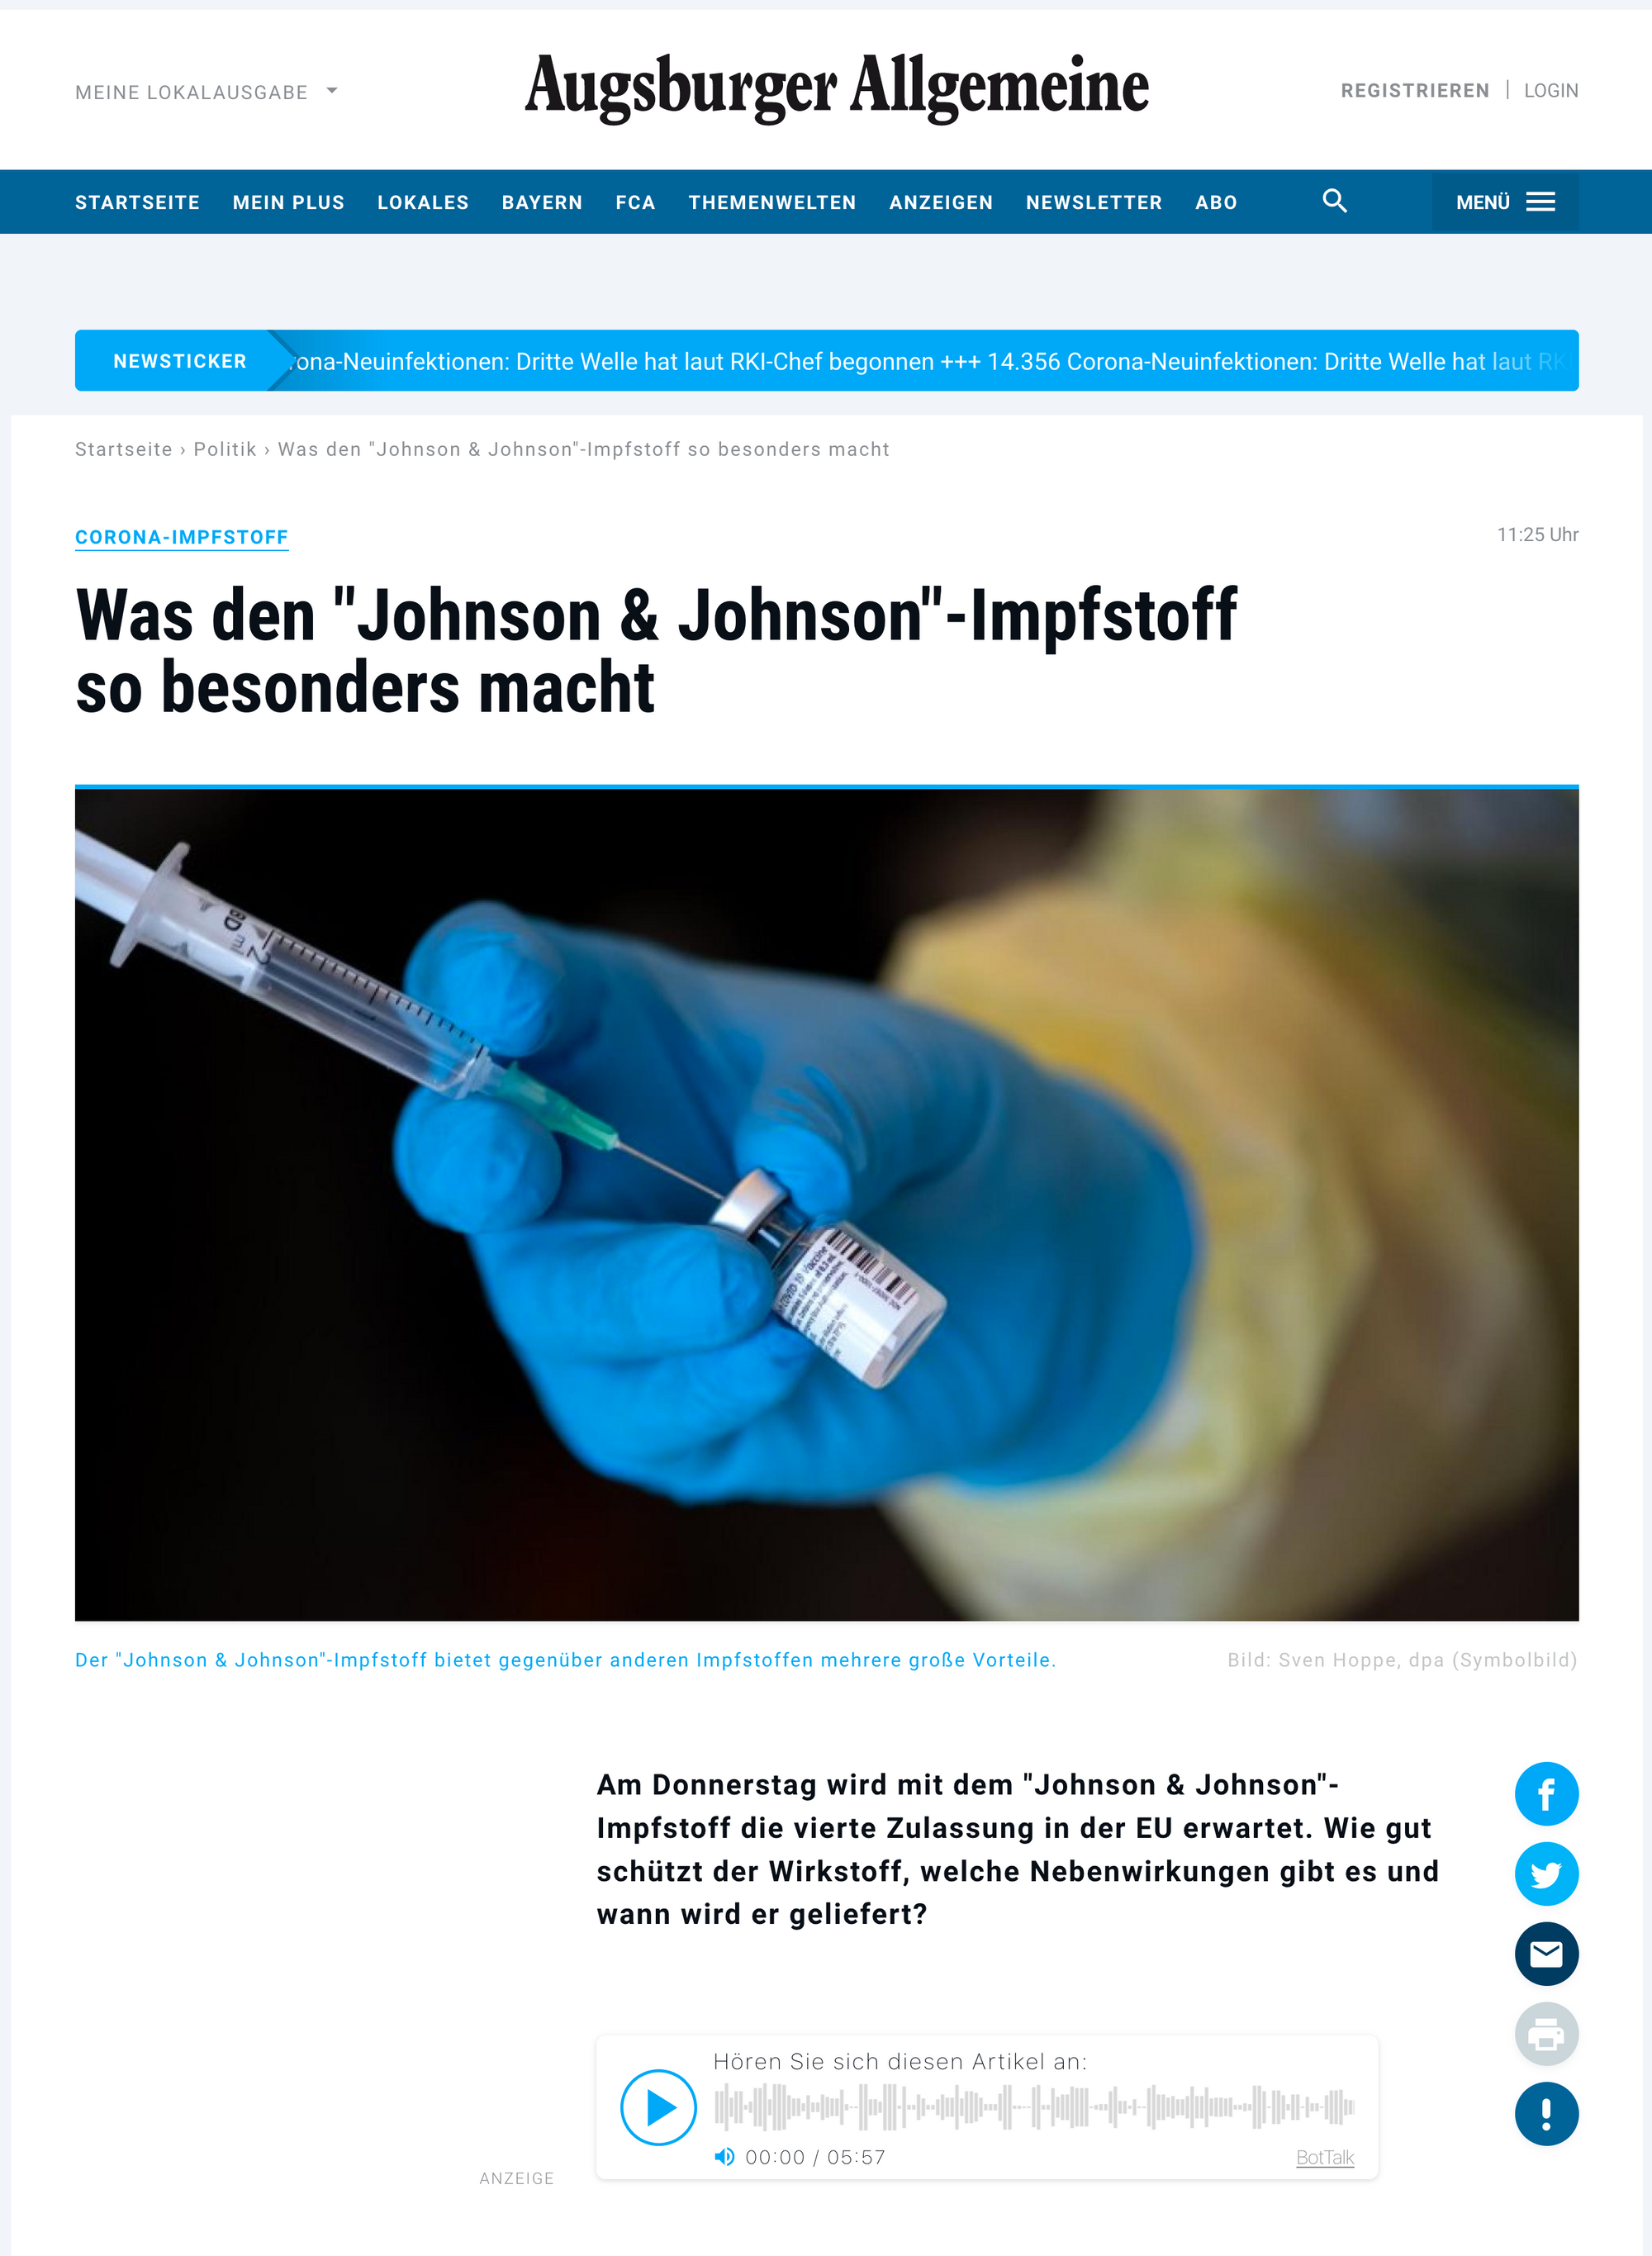 BotTalk player integrated in every article on the Augsburger Allgemeine webpage.